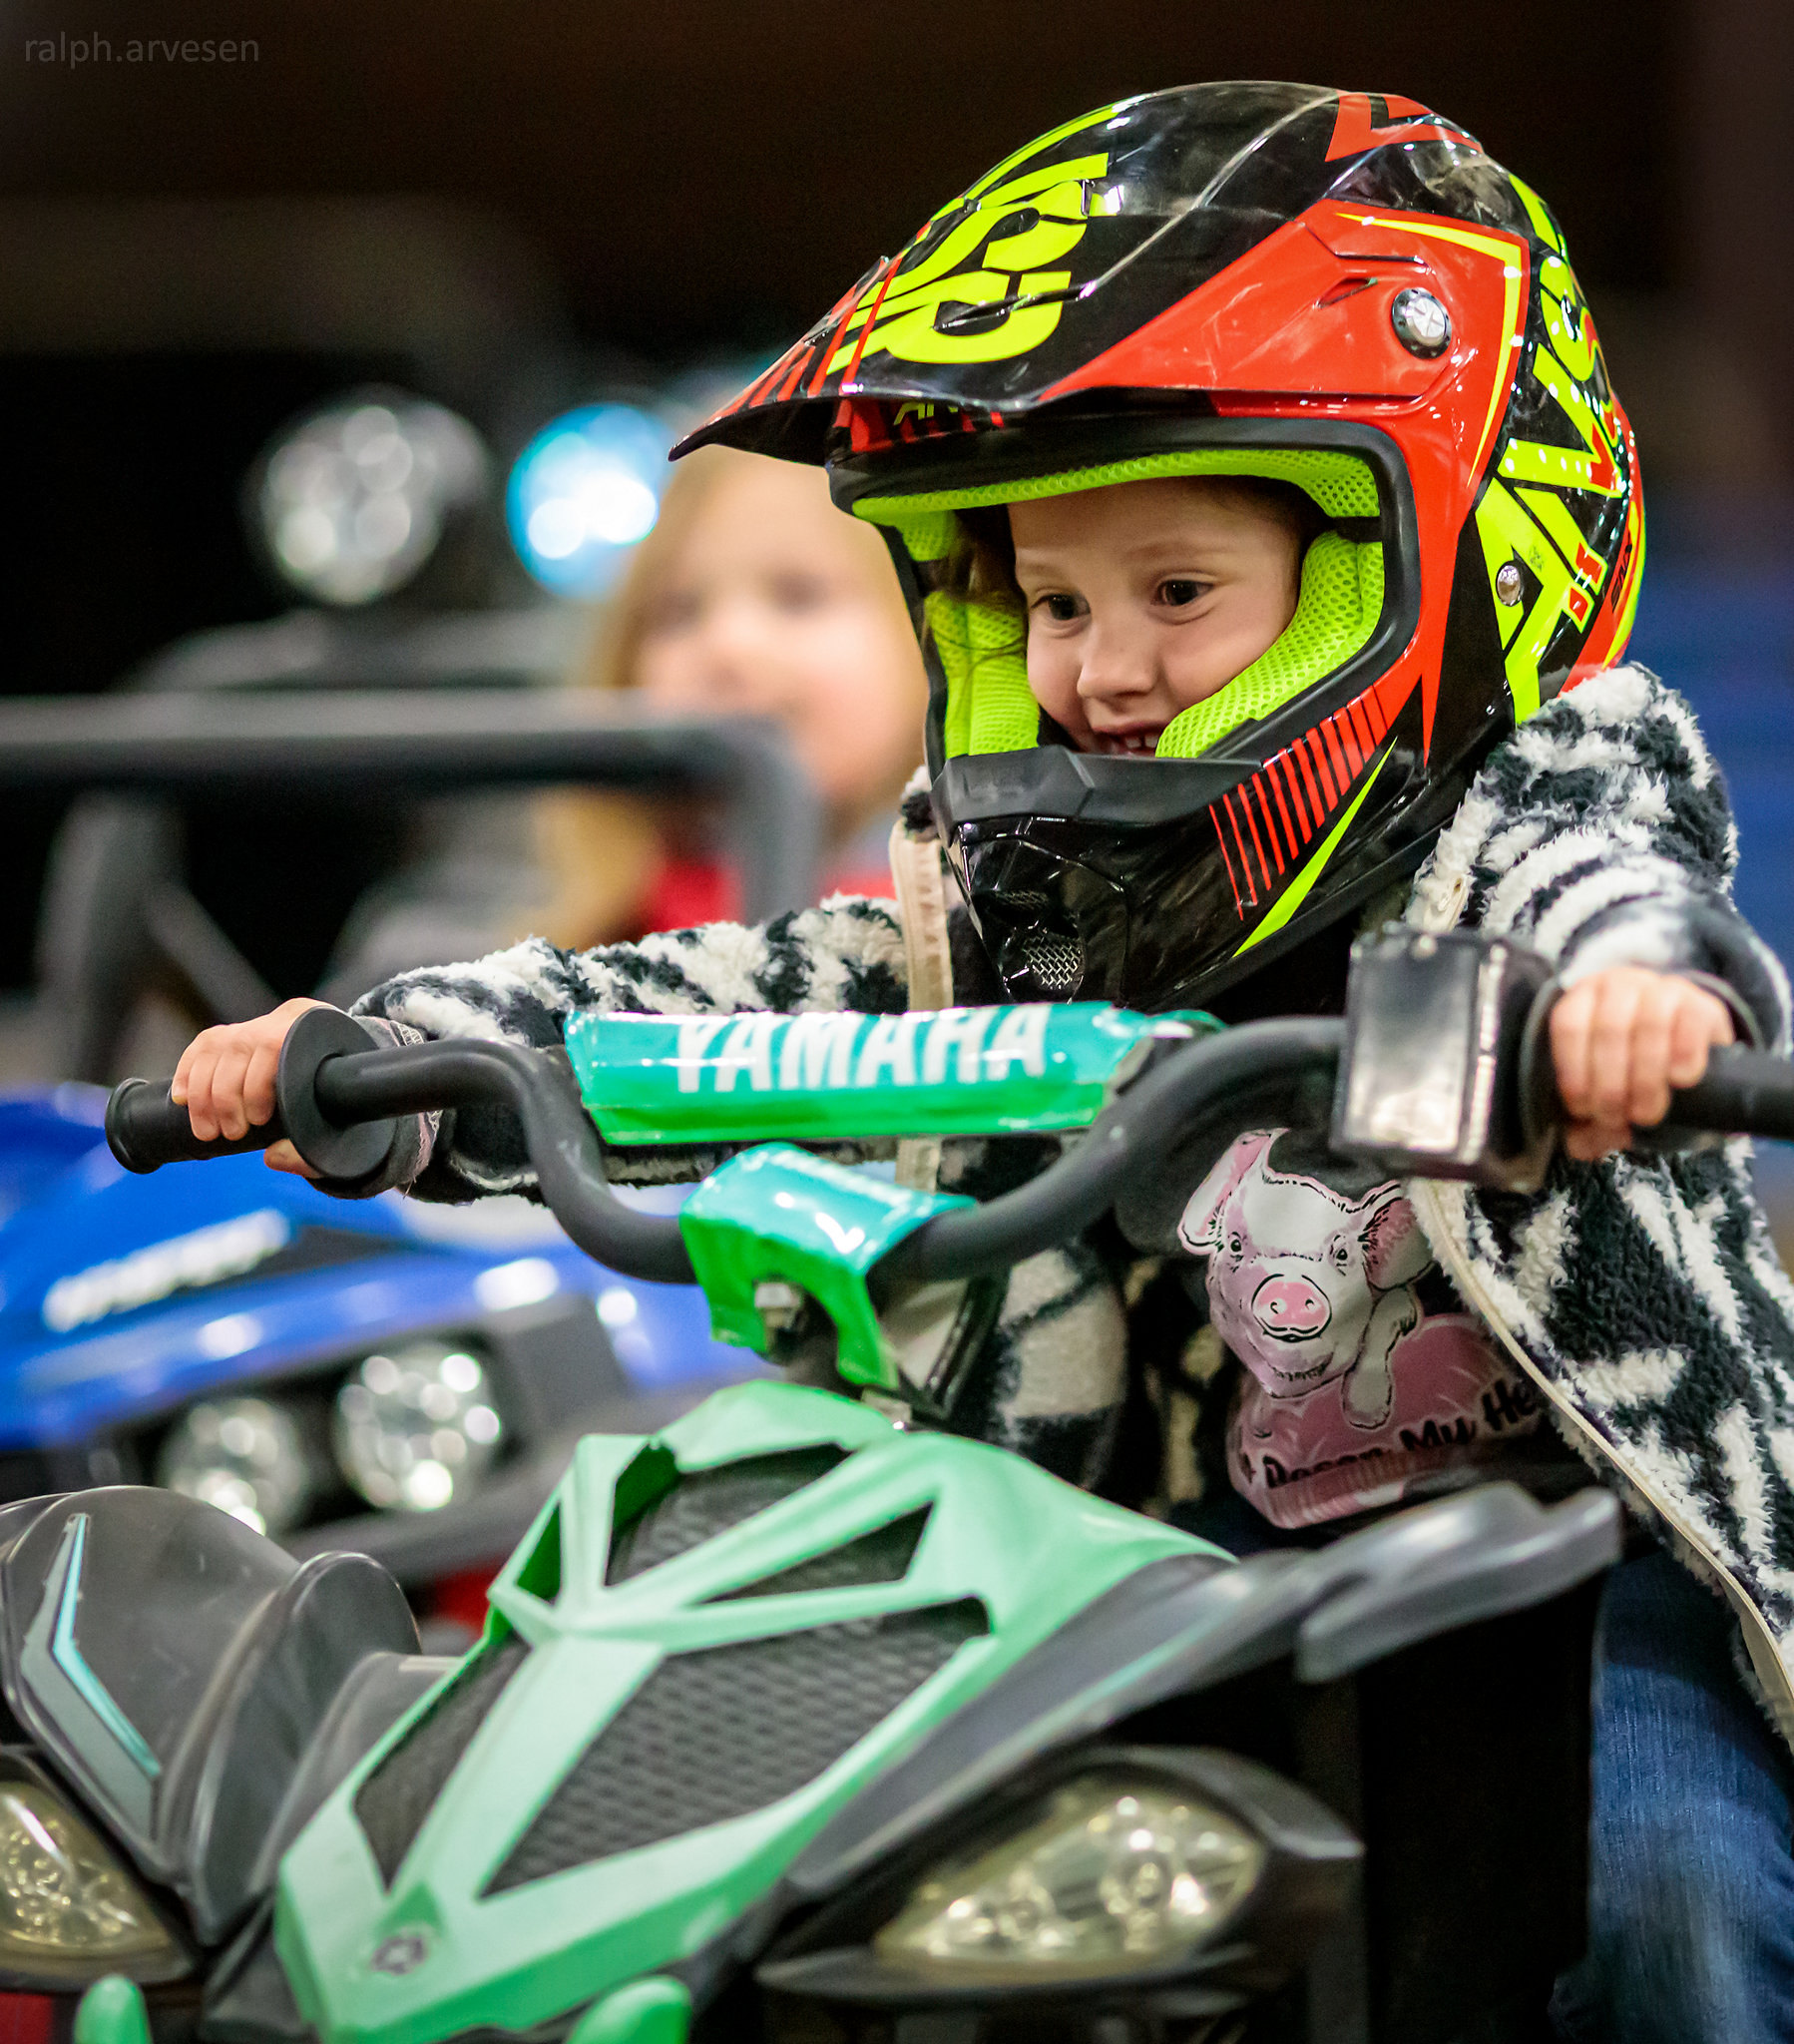 No Limits Kids Power Wheels at the John L Kuykendall Event Center and Arena in Llano, Texas